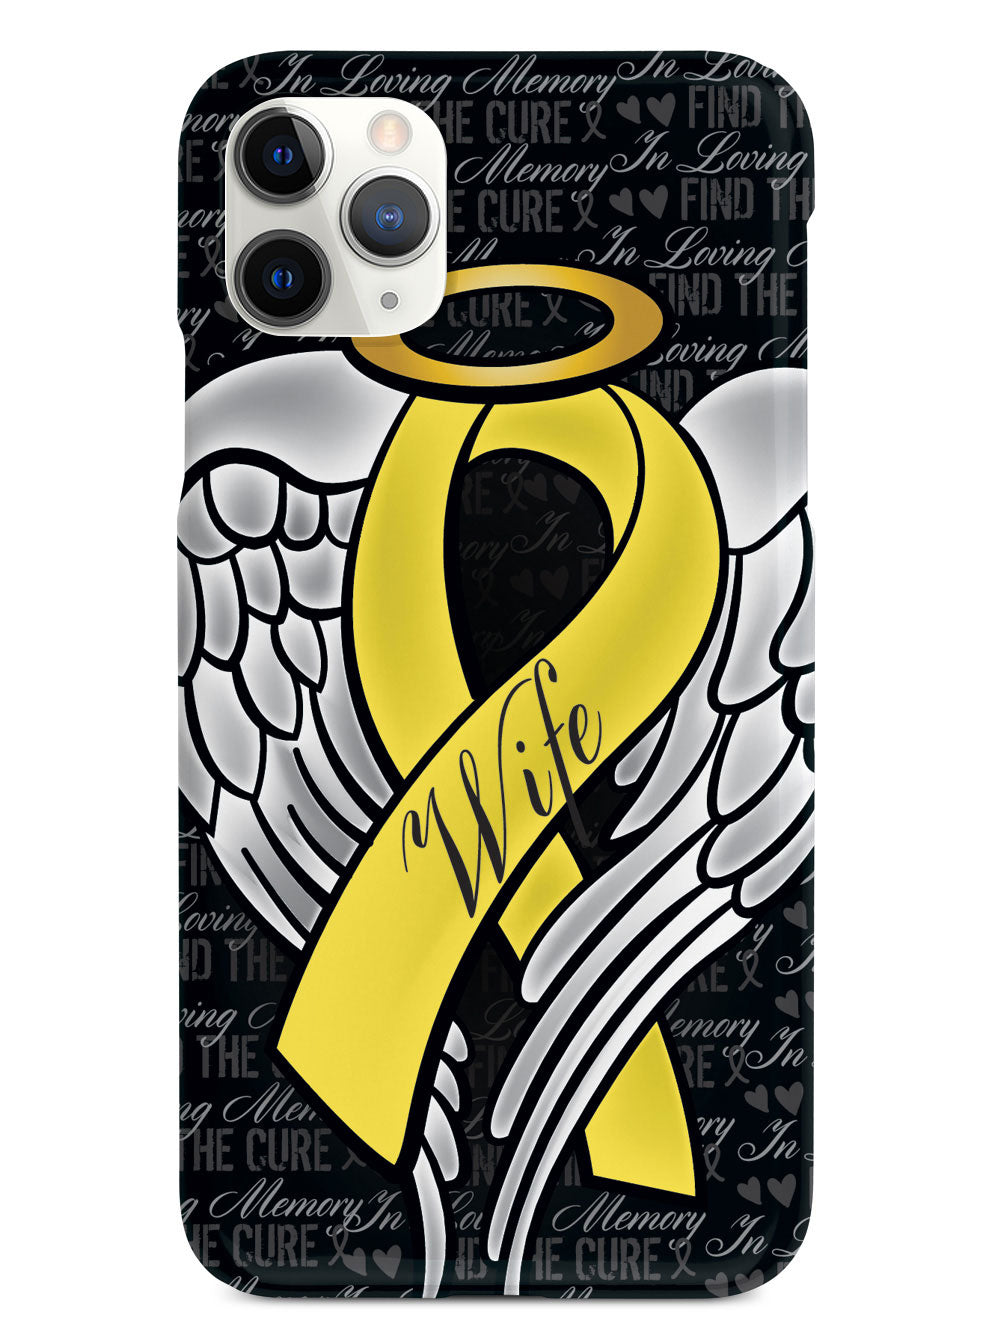 In Loving Memory of My Wife - Yellow Ribbon Case